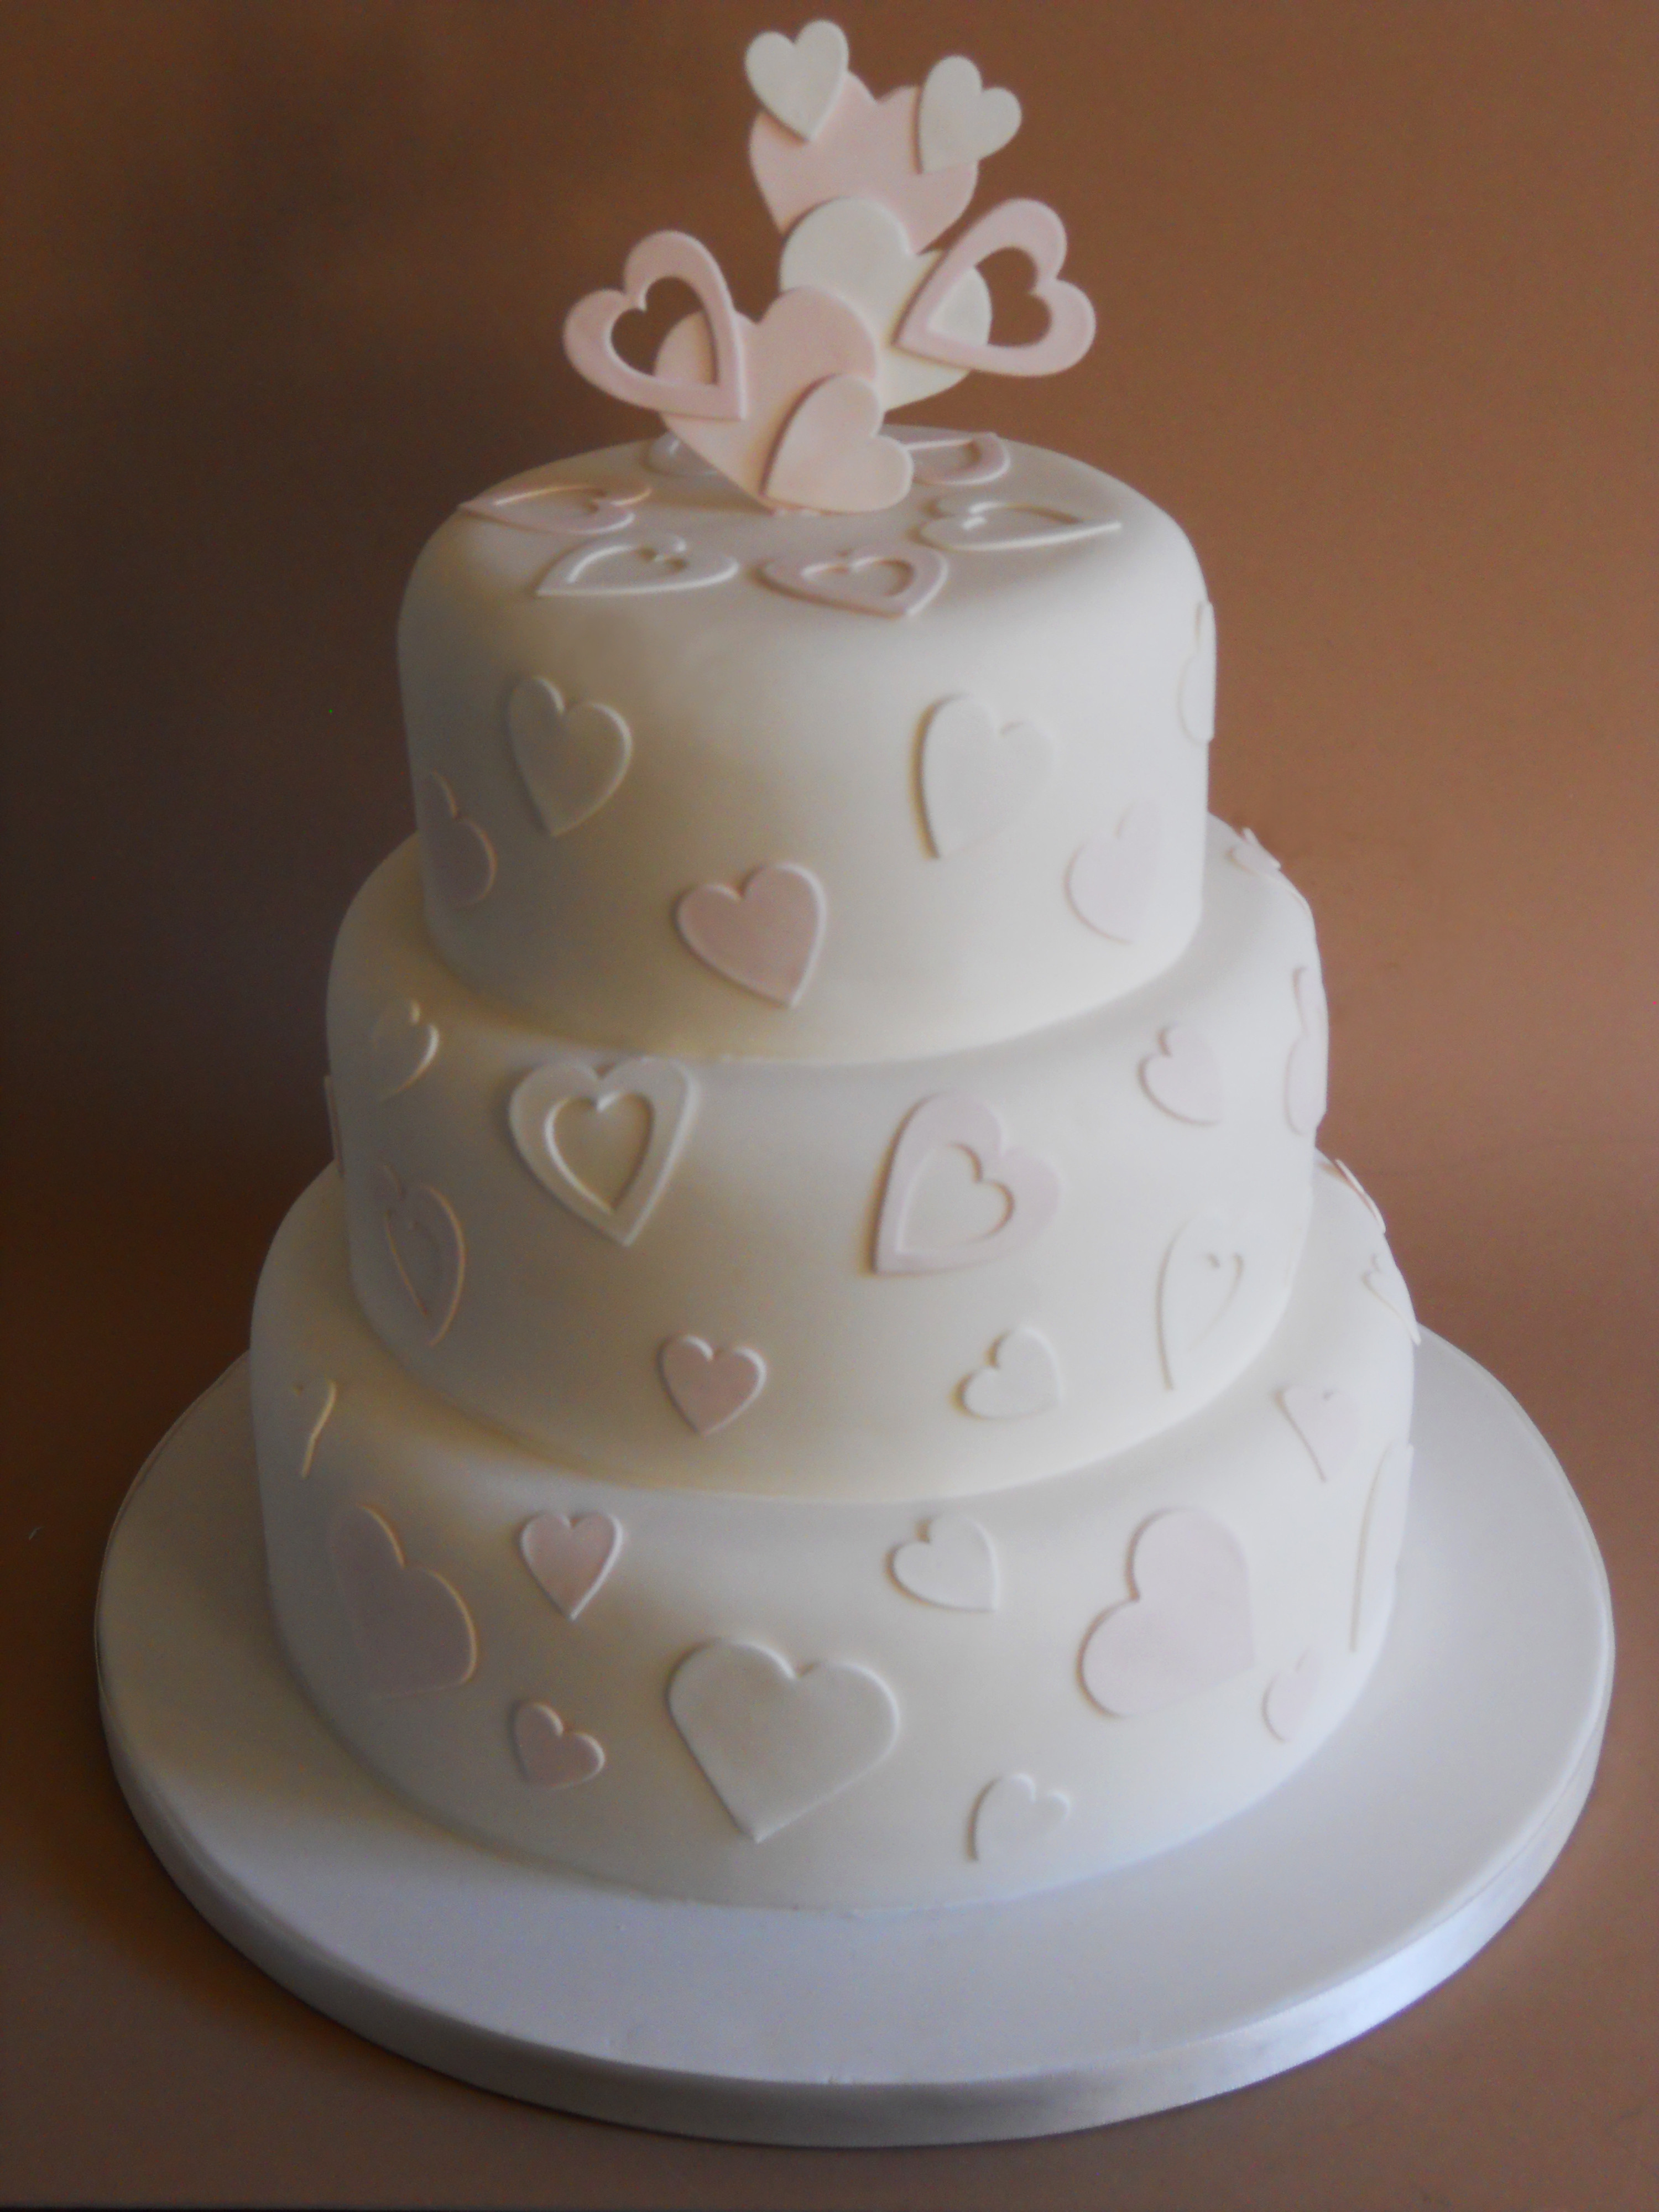 Wedding Cakes With Hearts  Heart wedding cakes an original way of spicing up idea